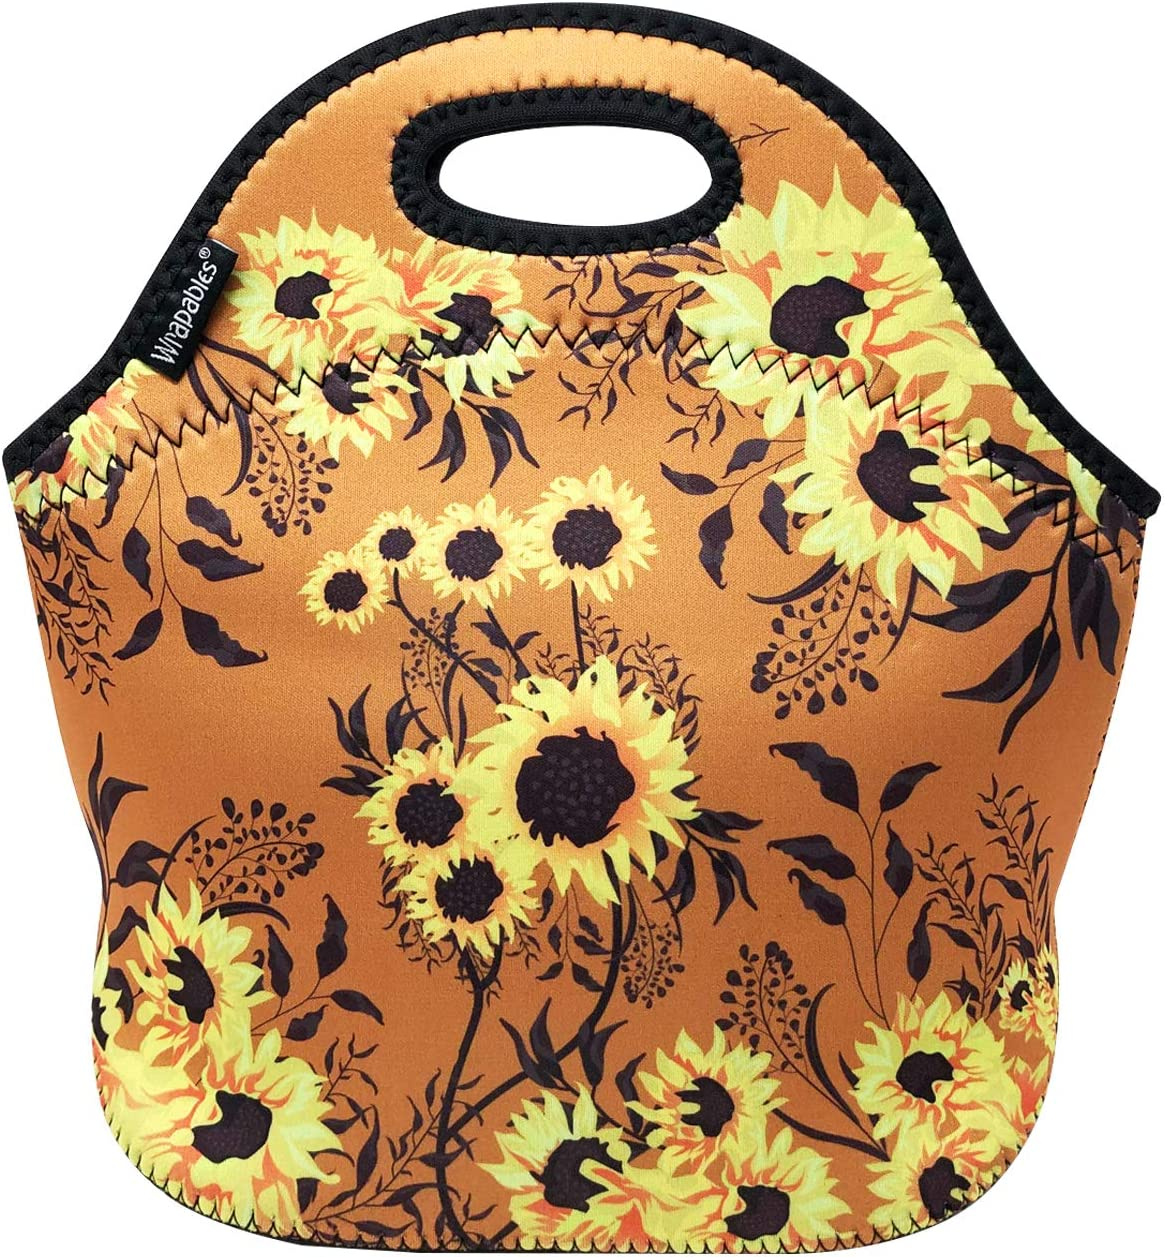 allydrew Insulated Neoprene Lunch Bag Zipper Lunch Box Tote, Sunflowers Tan